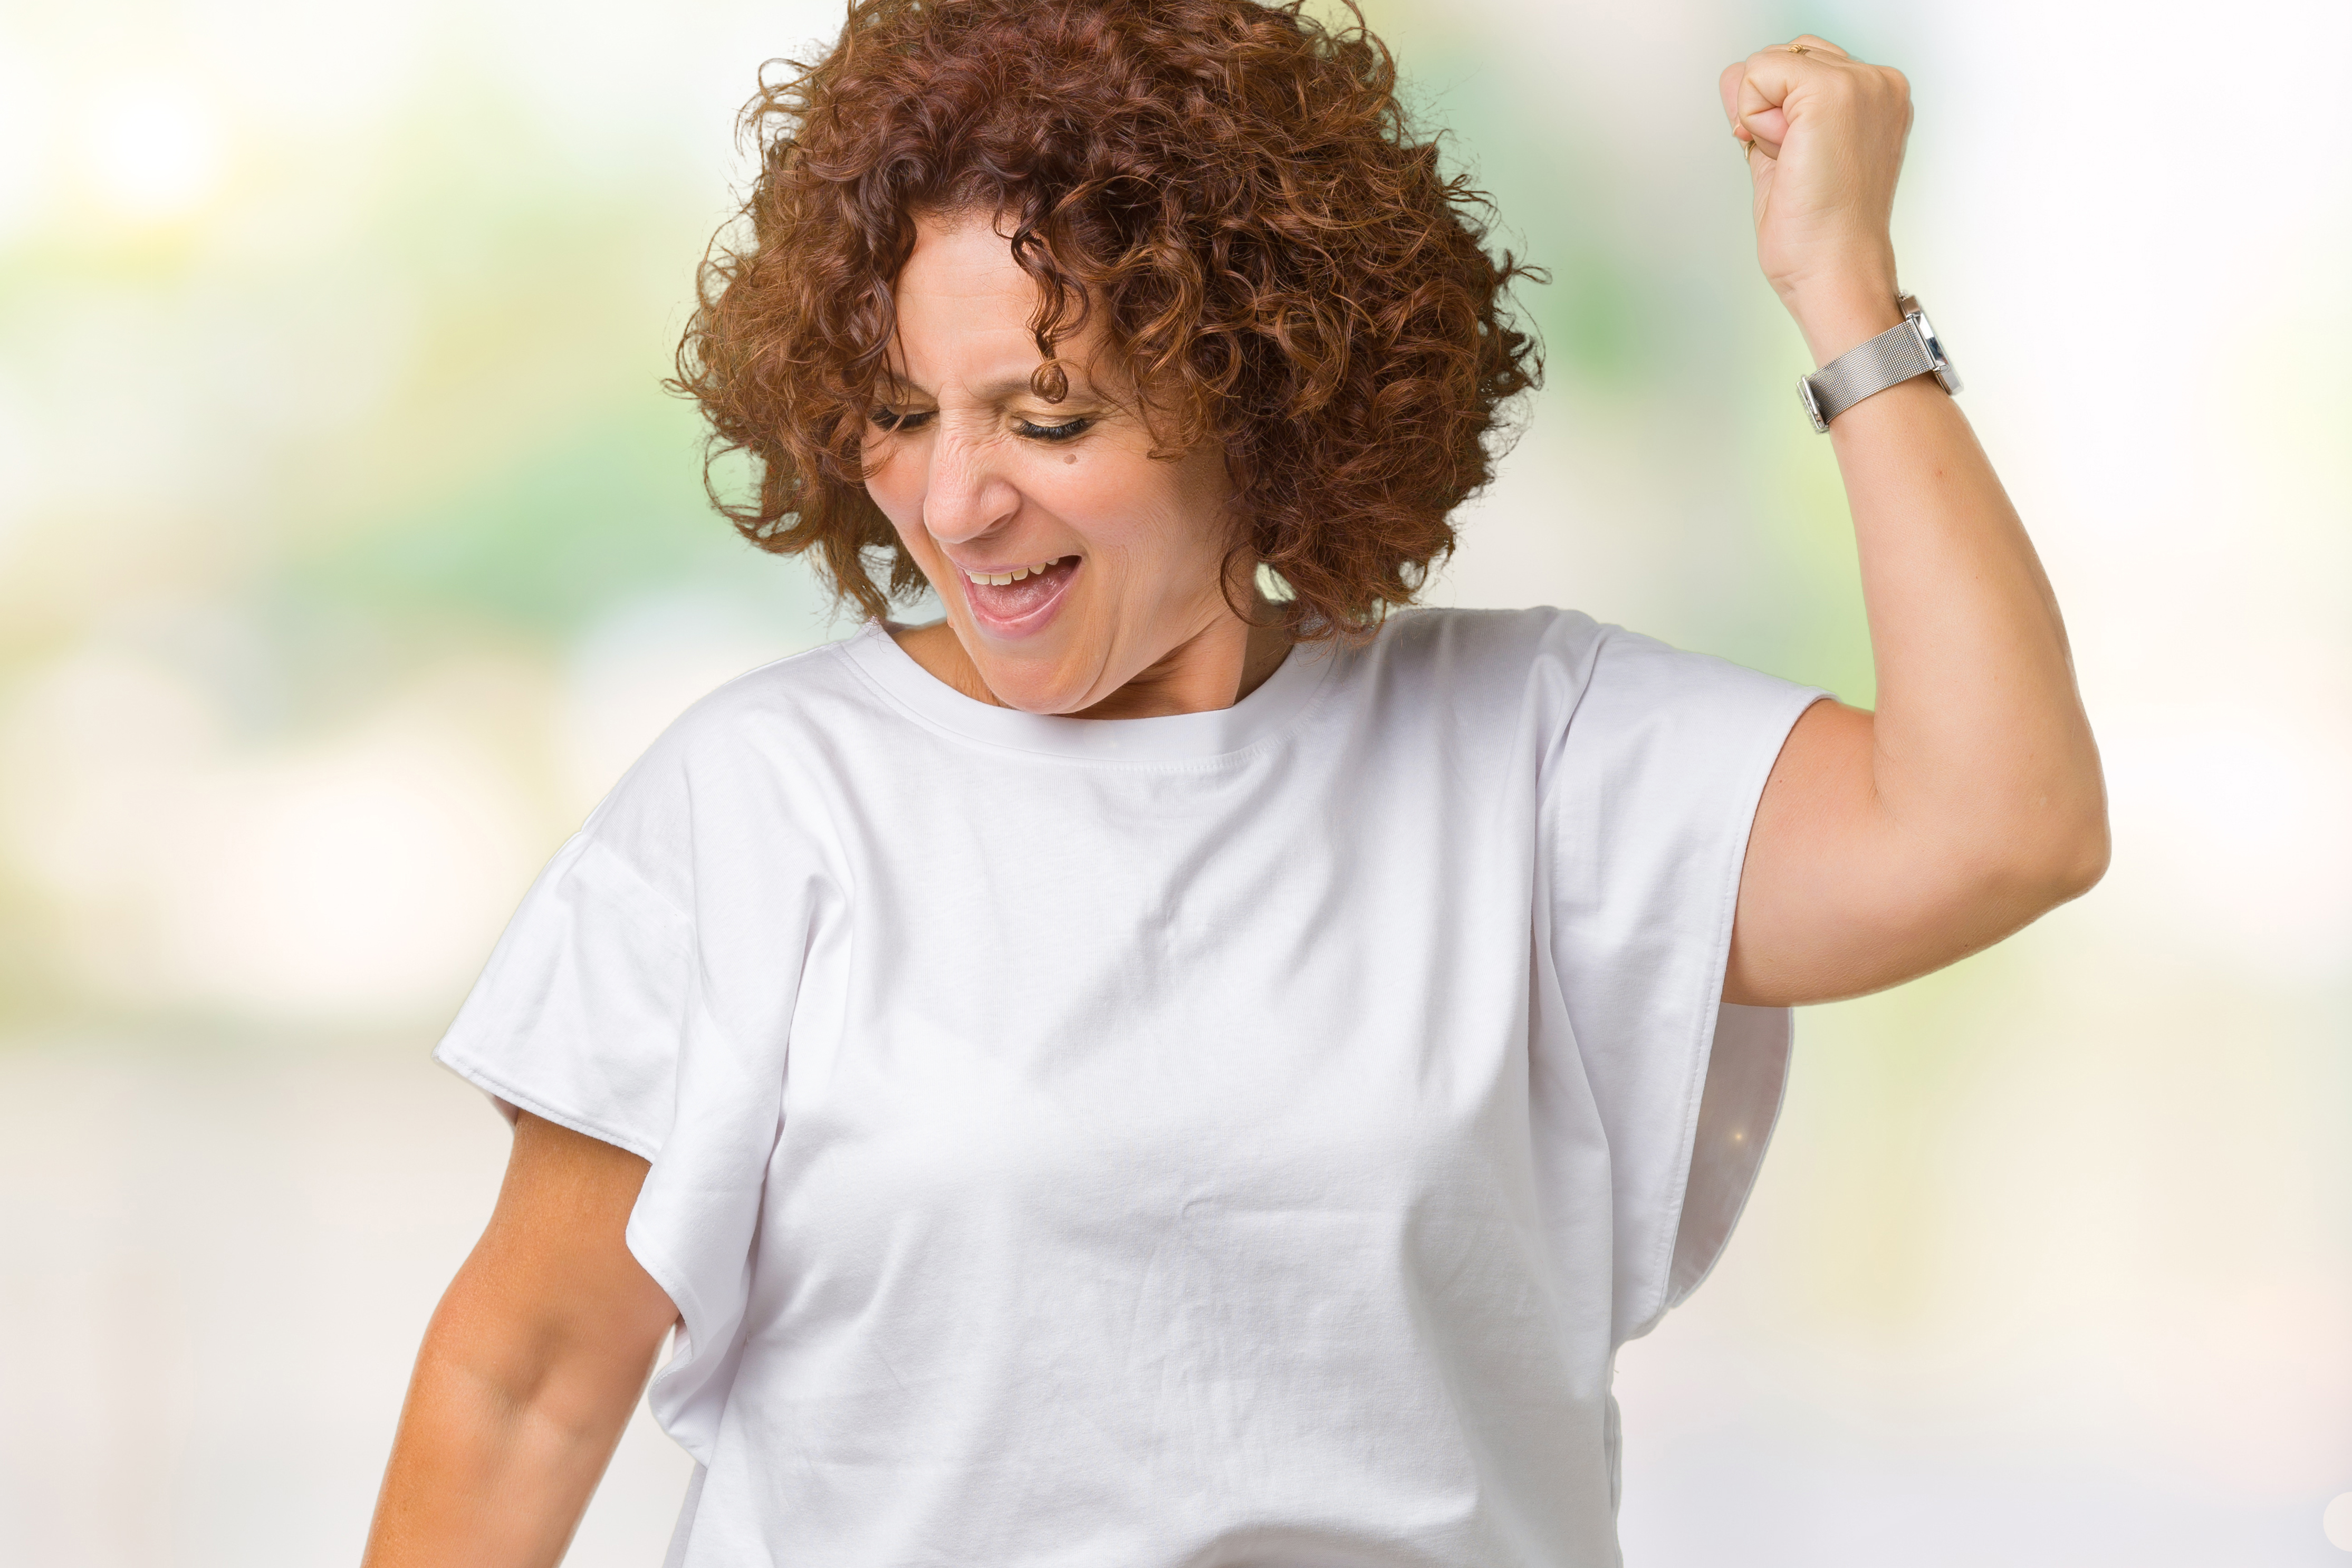 Beautiful middle ager senior woman wearing white t-shirt over isolated background Dancing happy and cheerful, smiling moving casual and confident listening to music